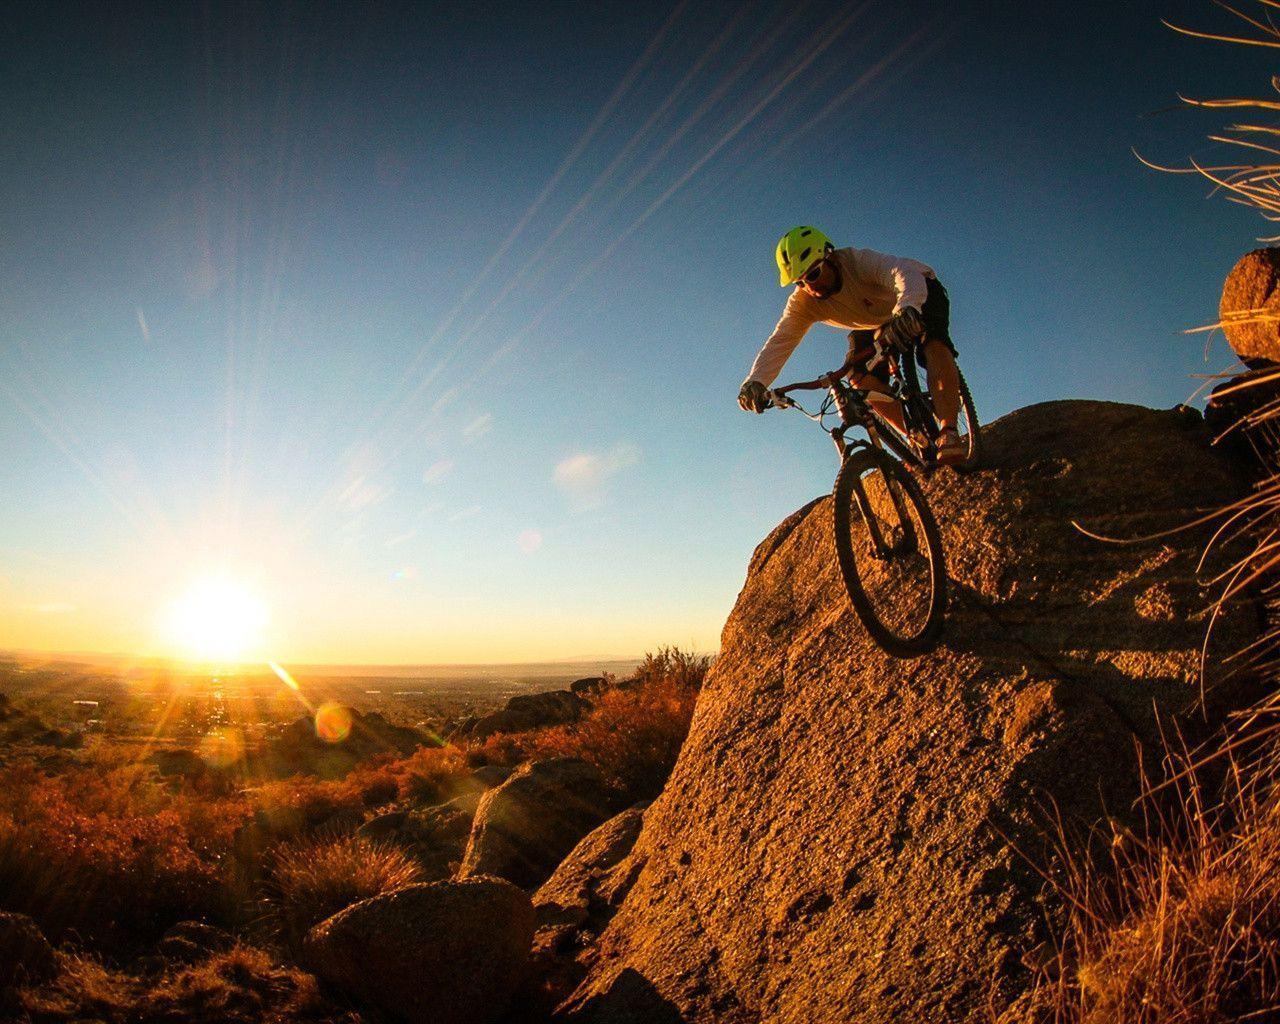 extreme sports mountain bike wallpapers sport biking markup formatting tags indy msd mountainbiken resolution america favorite wallpapercave amazing headings